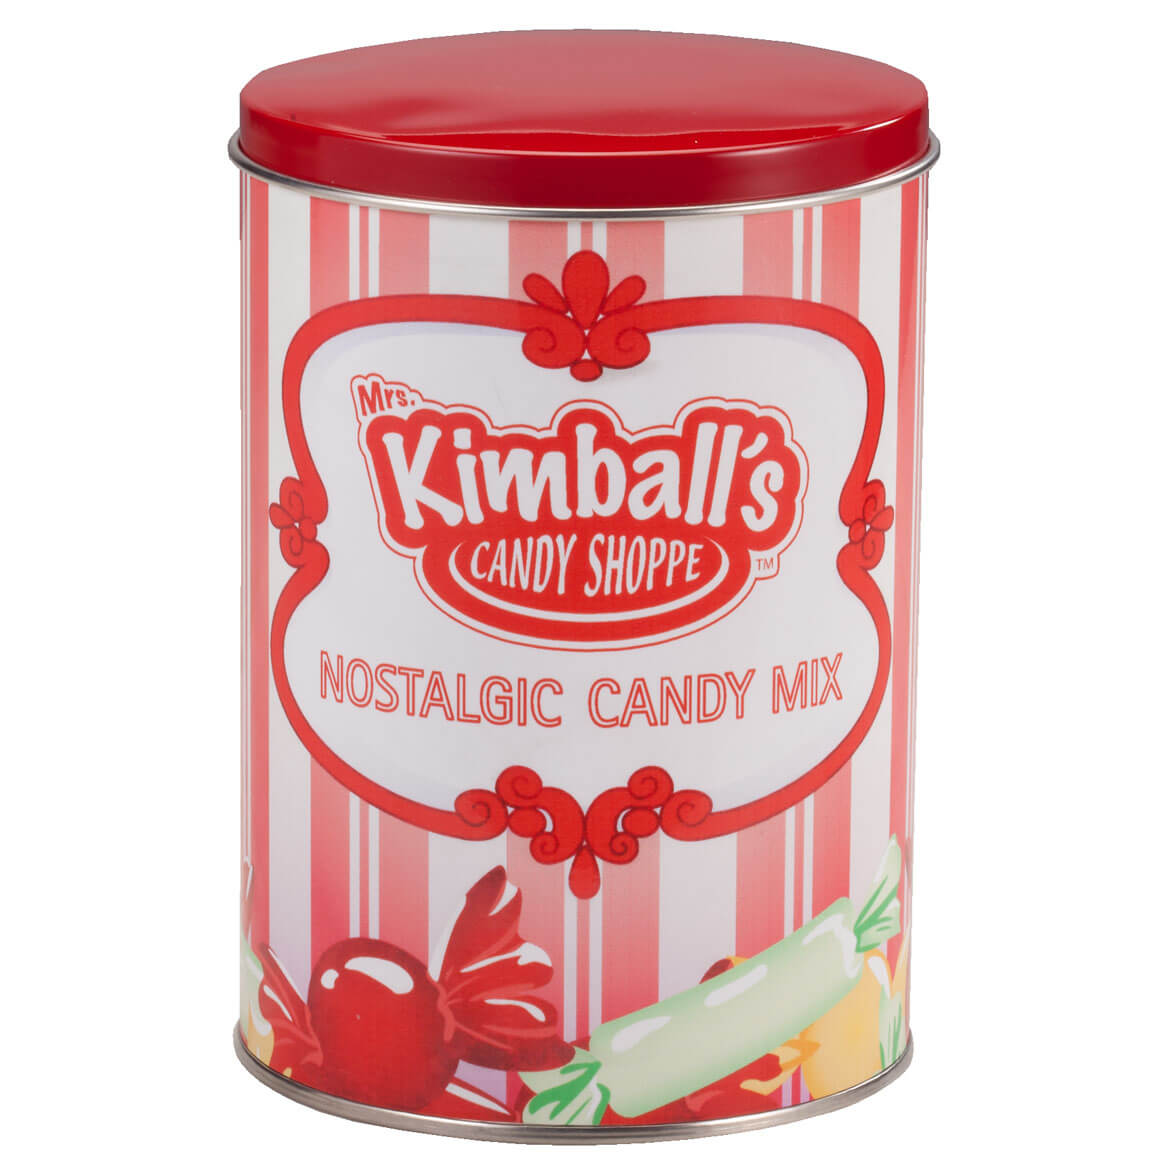 Mrs. Kimball's Candy Shoppe Nostalgic Candy Mix Keepsake Tin-357626